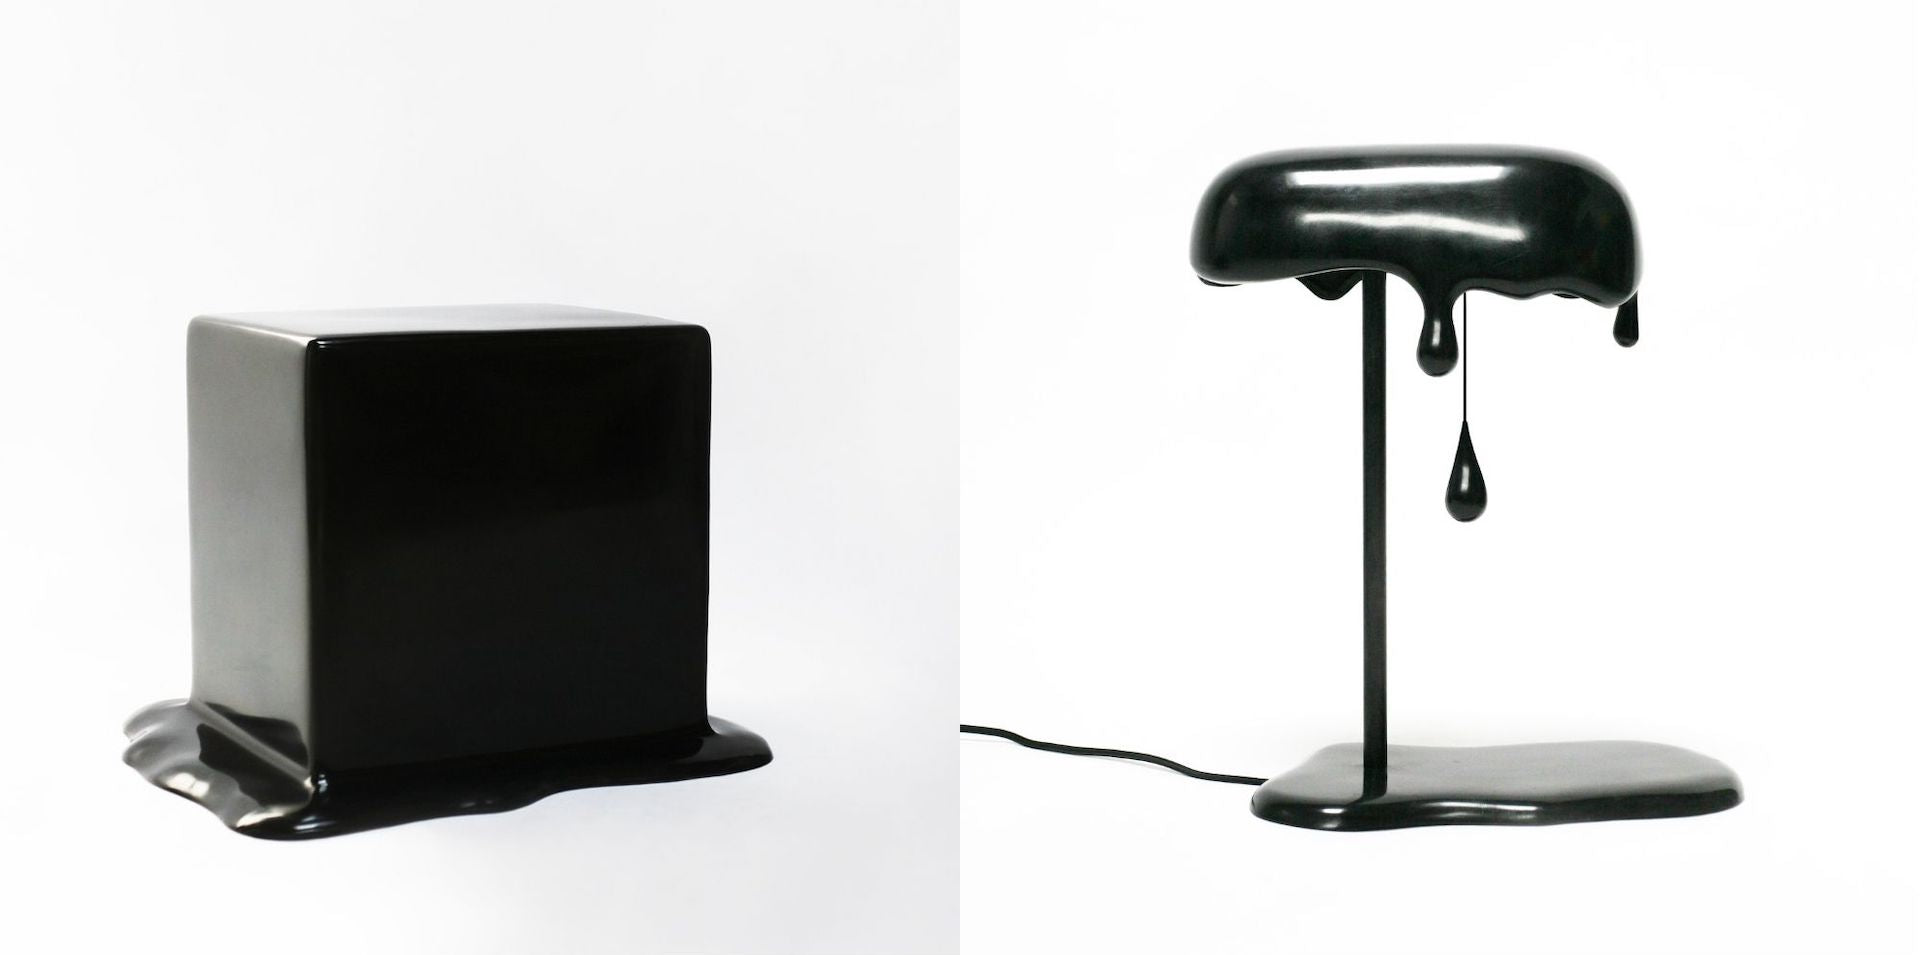 Puddle bench and Bosch Ink Writer table lamp, both part of The Melting Series - Black Patina by Reinier Bosch, a family of bronze design objects that seem to melt. Photos © Priveekollektie